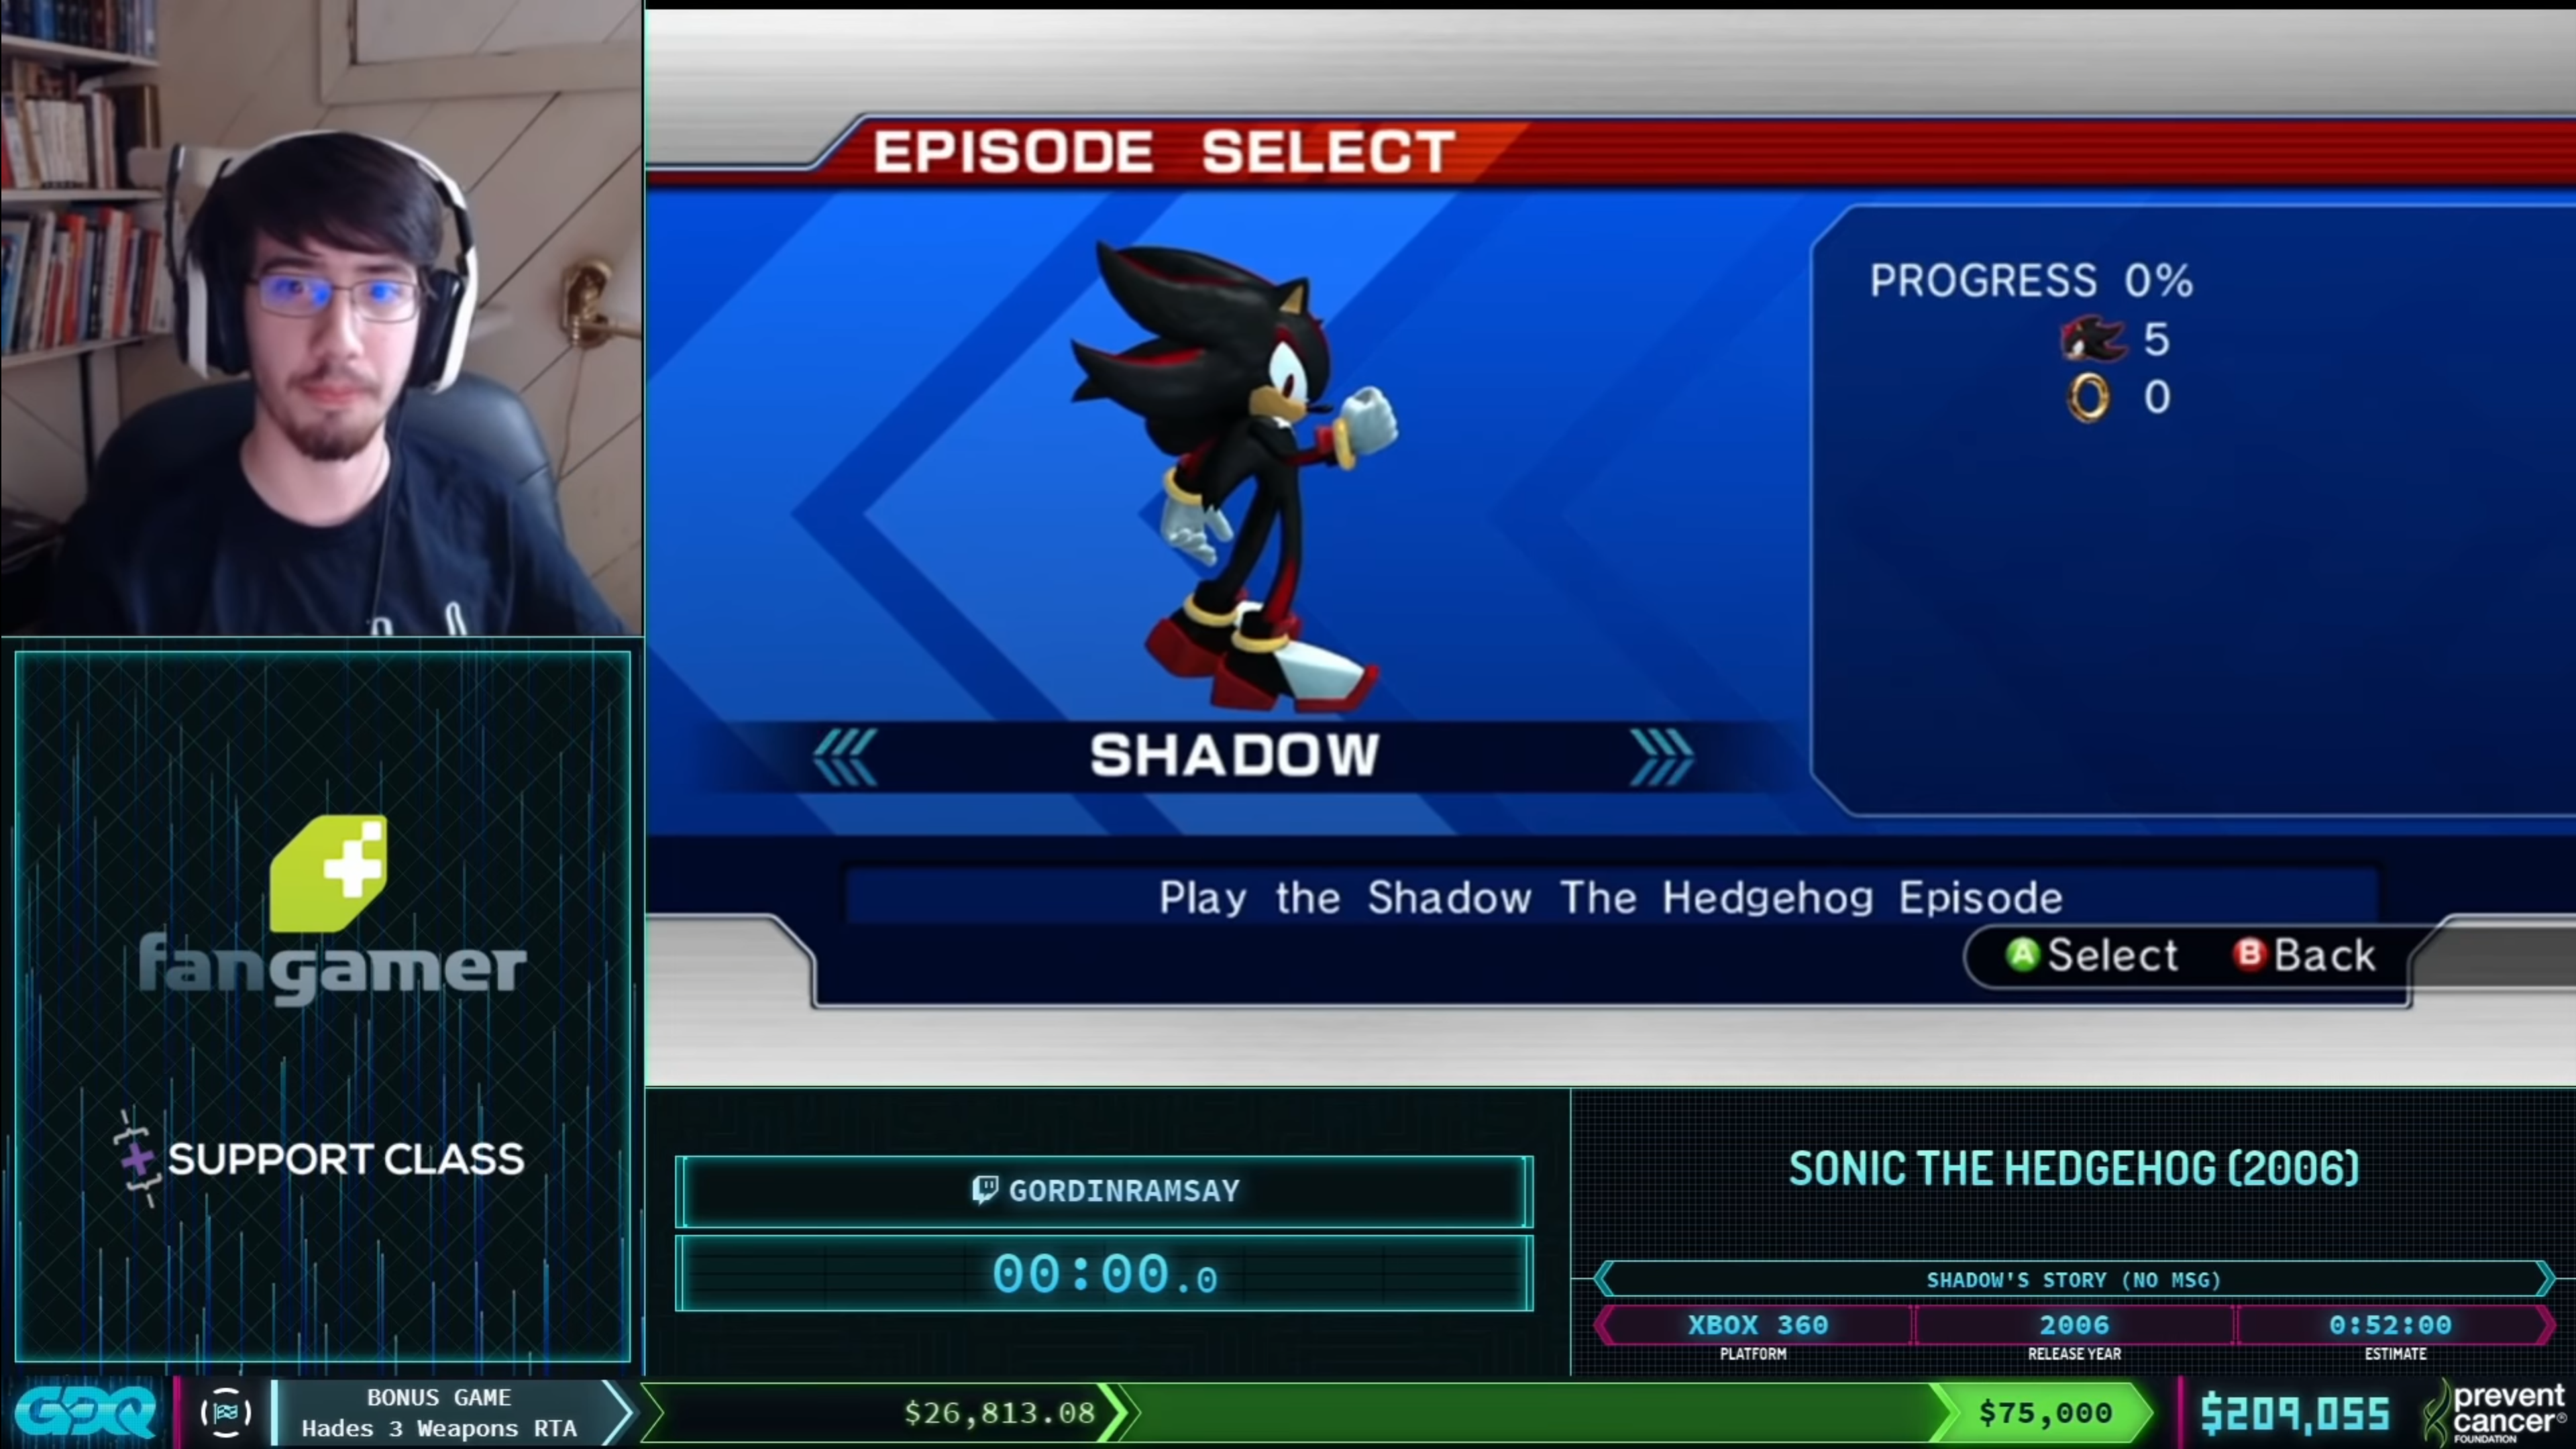 AGDQ 2021 Sonic the Hedgehog